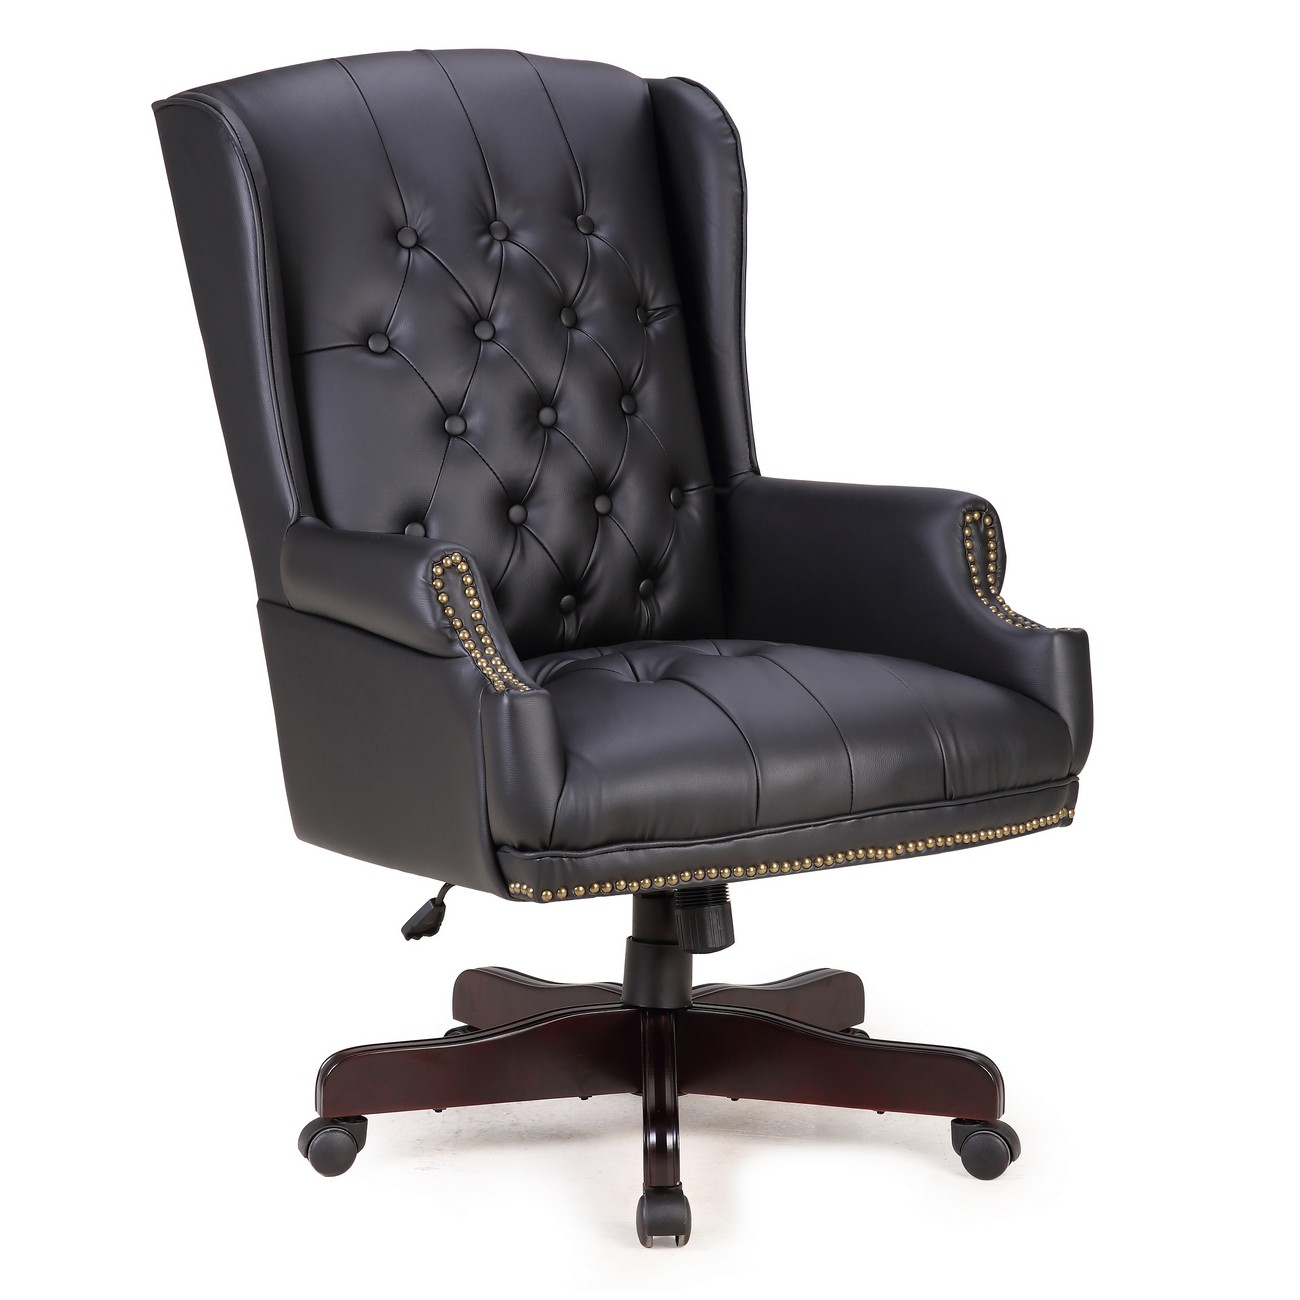 Marvelous Executive Classic Wingback Desk Chair, Tufted With Faux Leather Wood Base,  Black